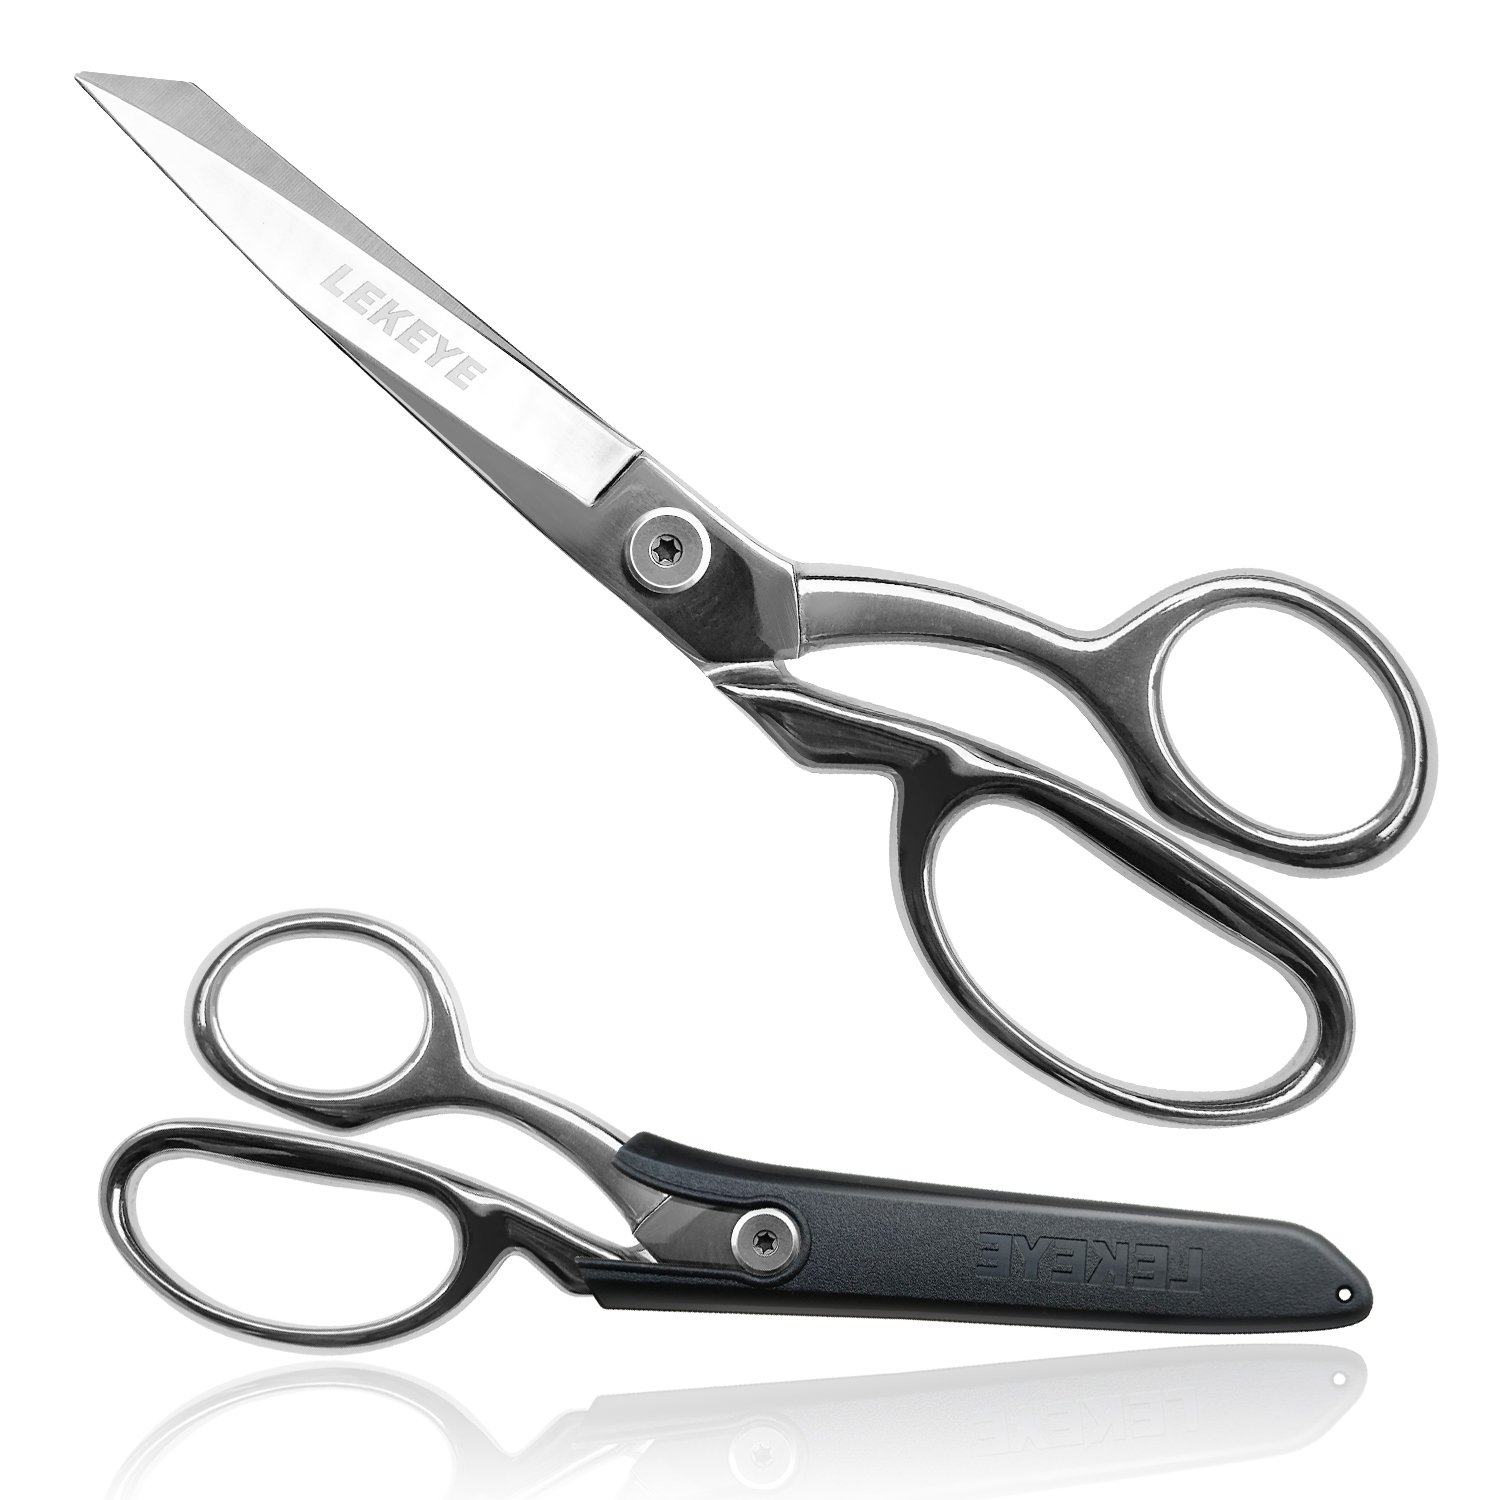 "LEKEYE Dressmaker's Scissors Heavy-Duty 8"" Fabric Cutting Shears for Smooth Multiple Layer Cutting